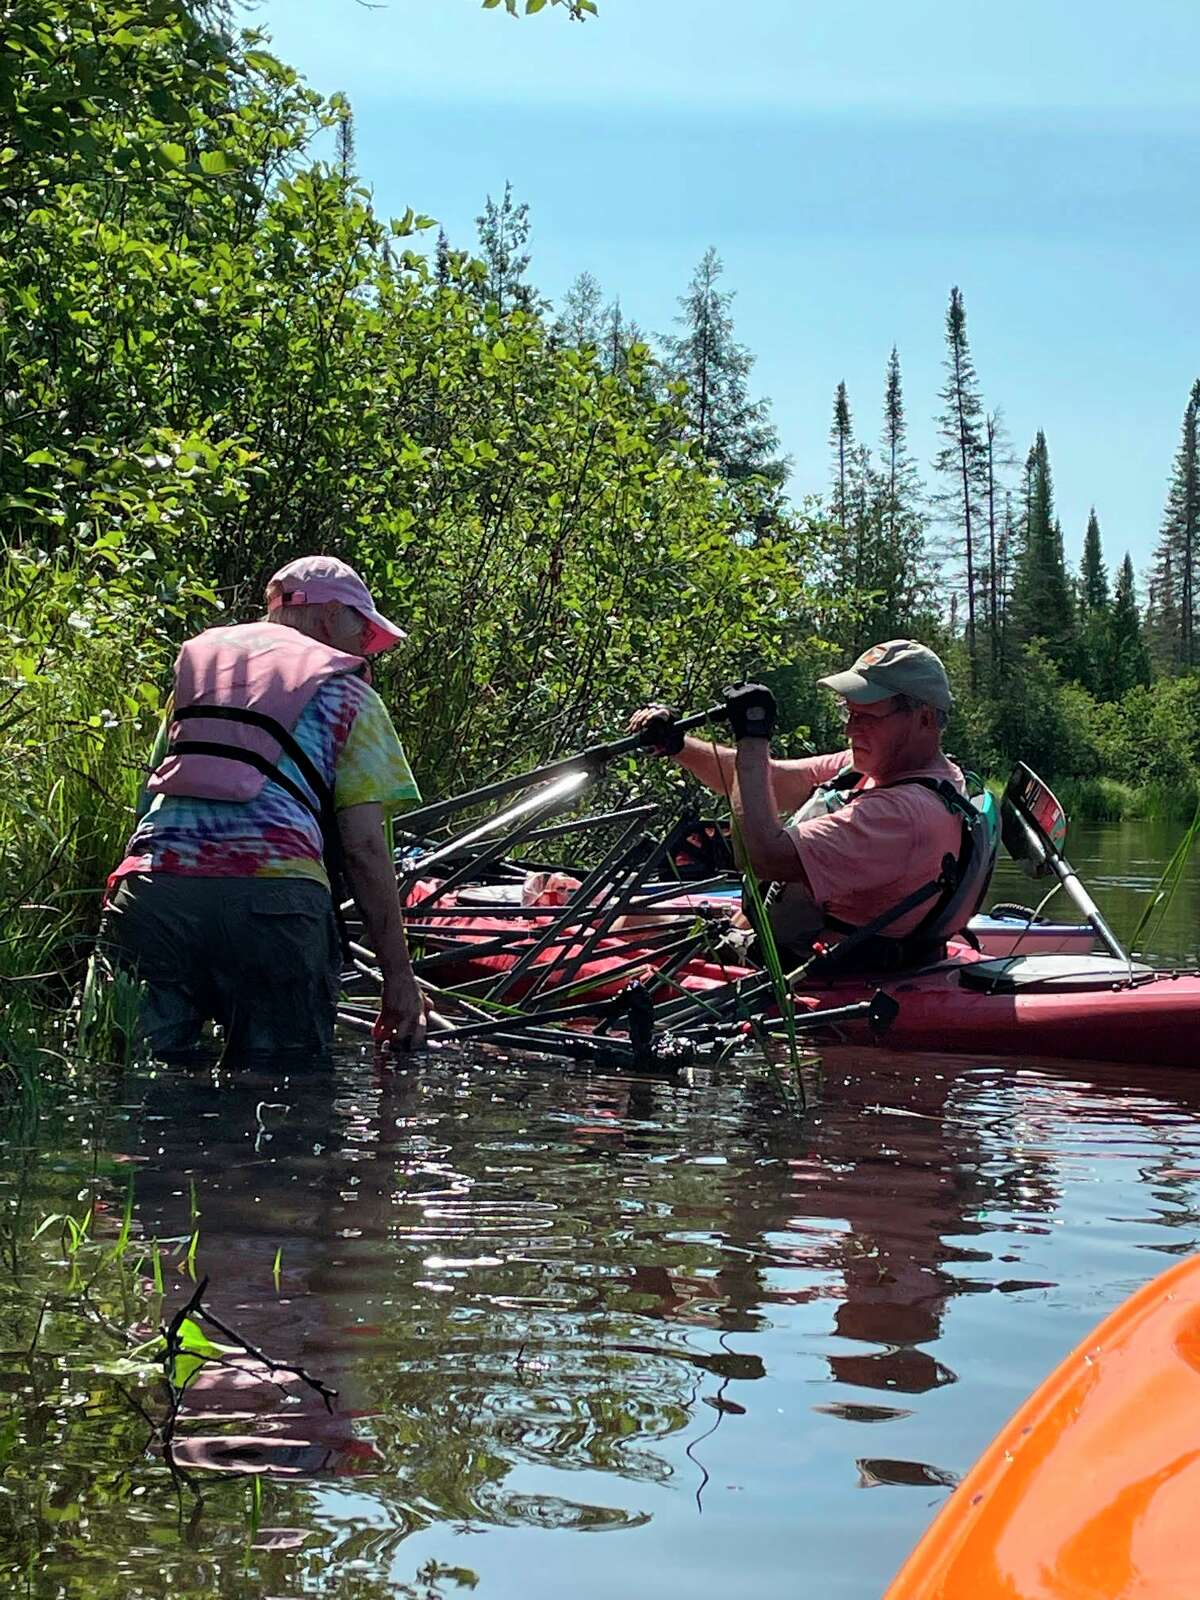 Volunteers wrestle to haul a large tent out of the Platte River during the Clean Sweep event on July 17. (Courtesy Photo)